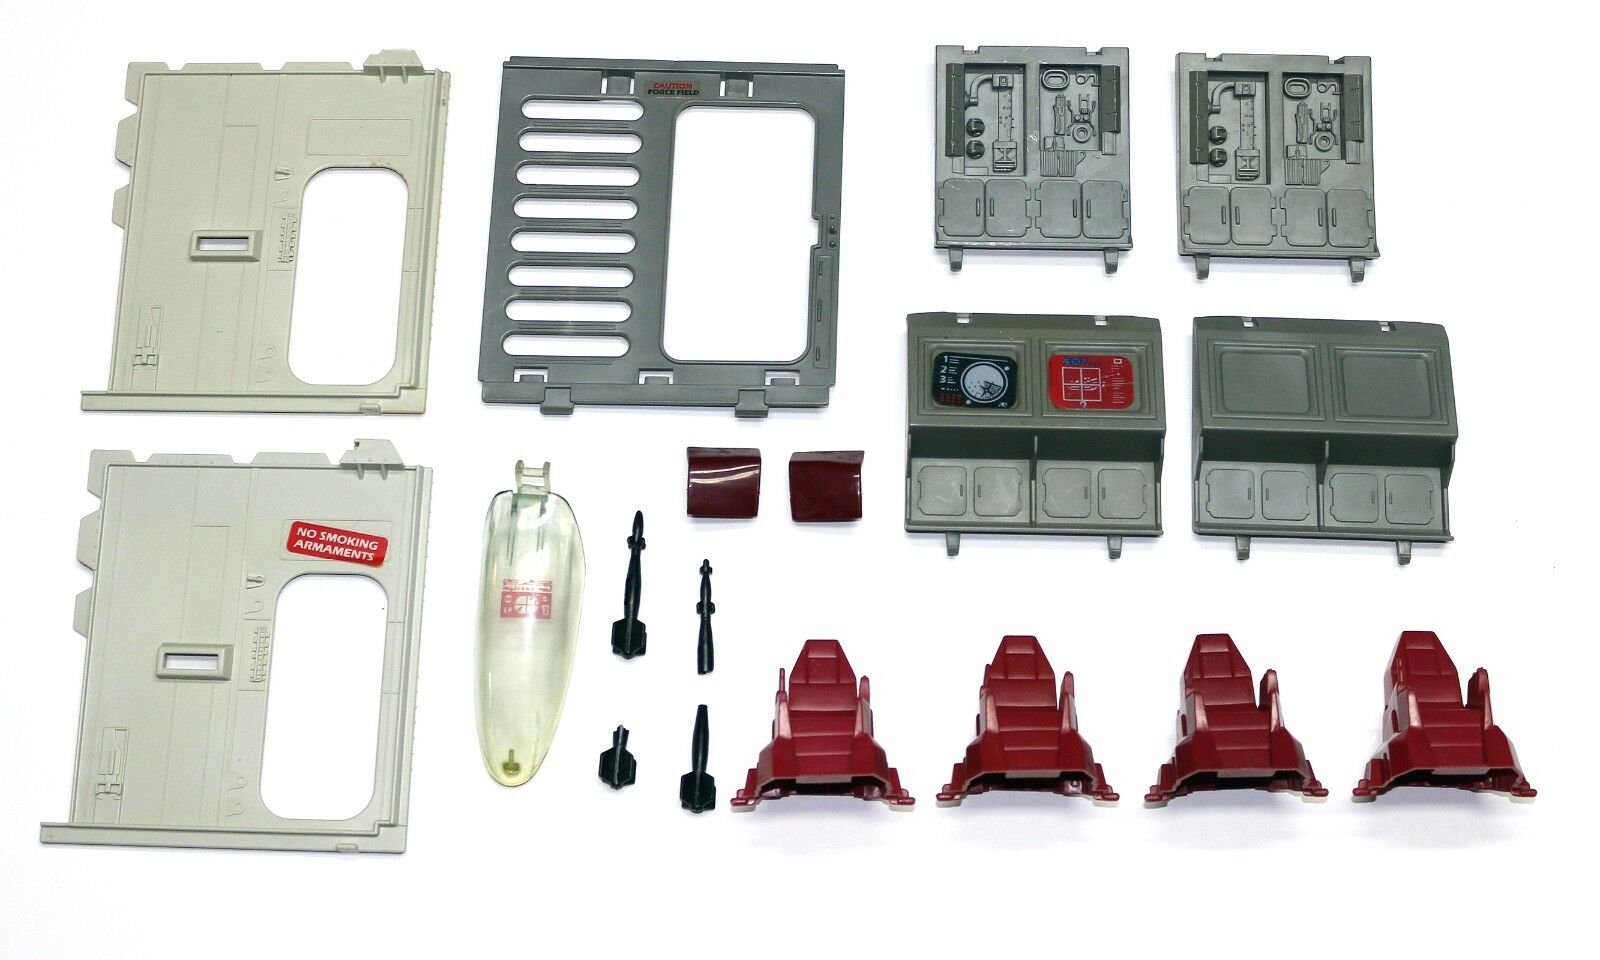 1986 Cobra Terror Drome - Parts Lot - 16 Total Pieces